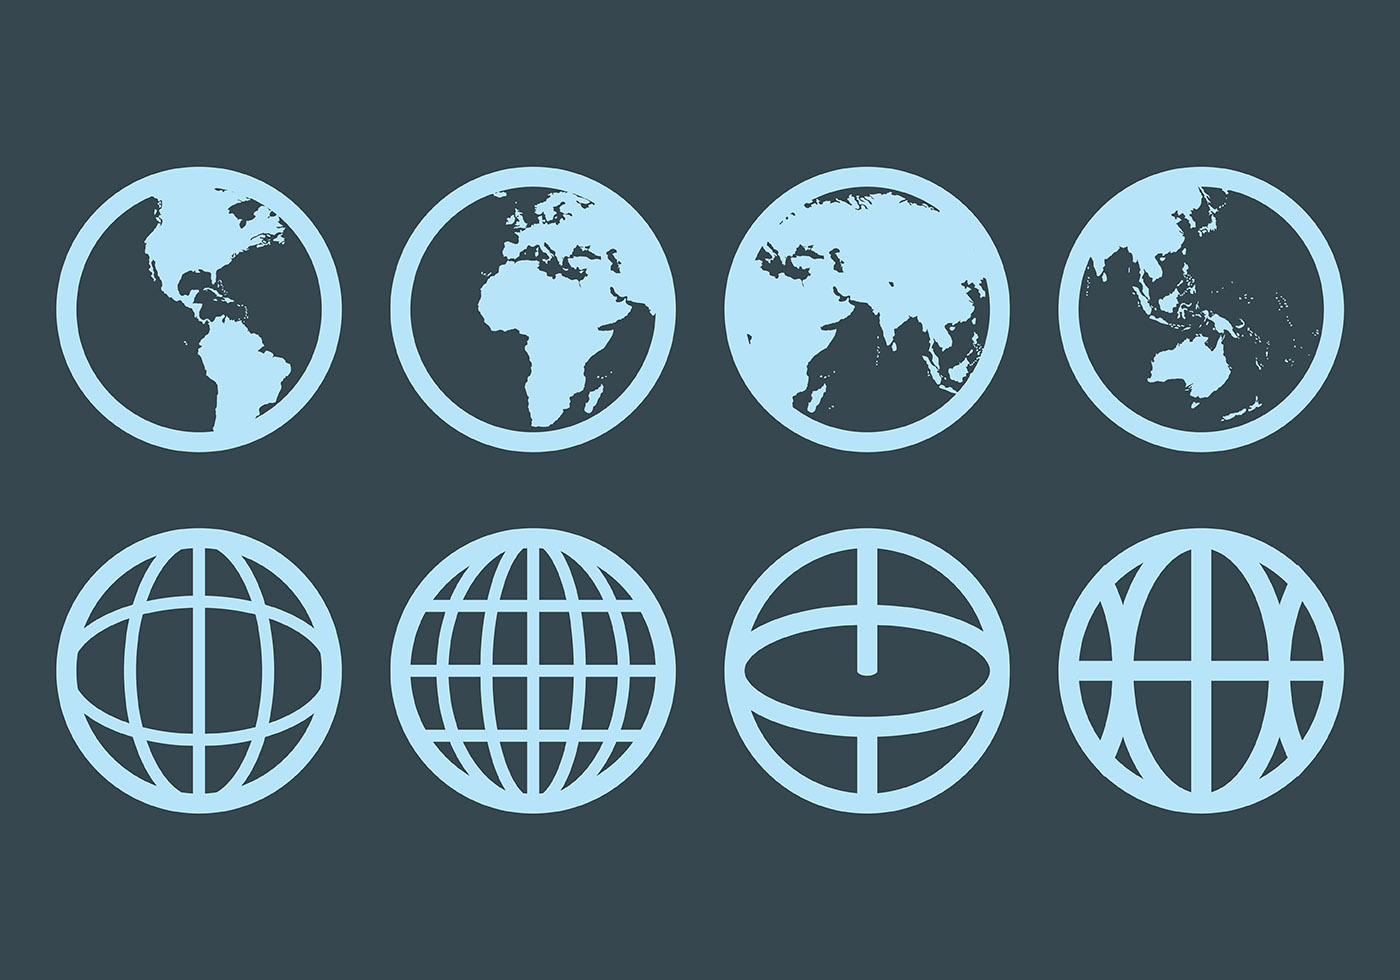 Free Globus Icons Vector - Download Free Vector Art, Stock ...